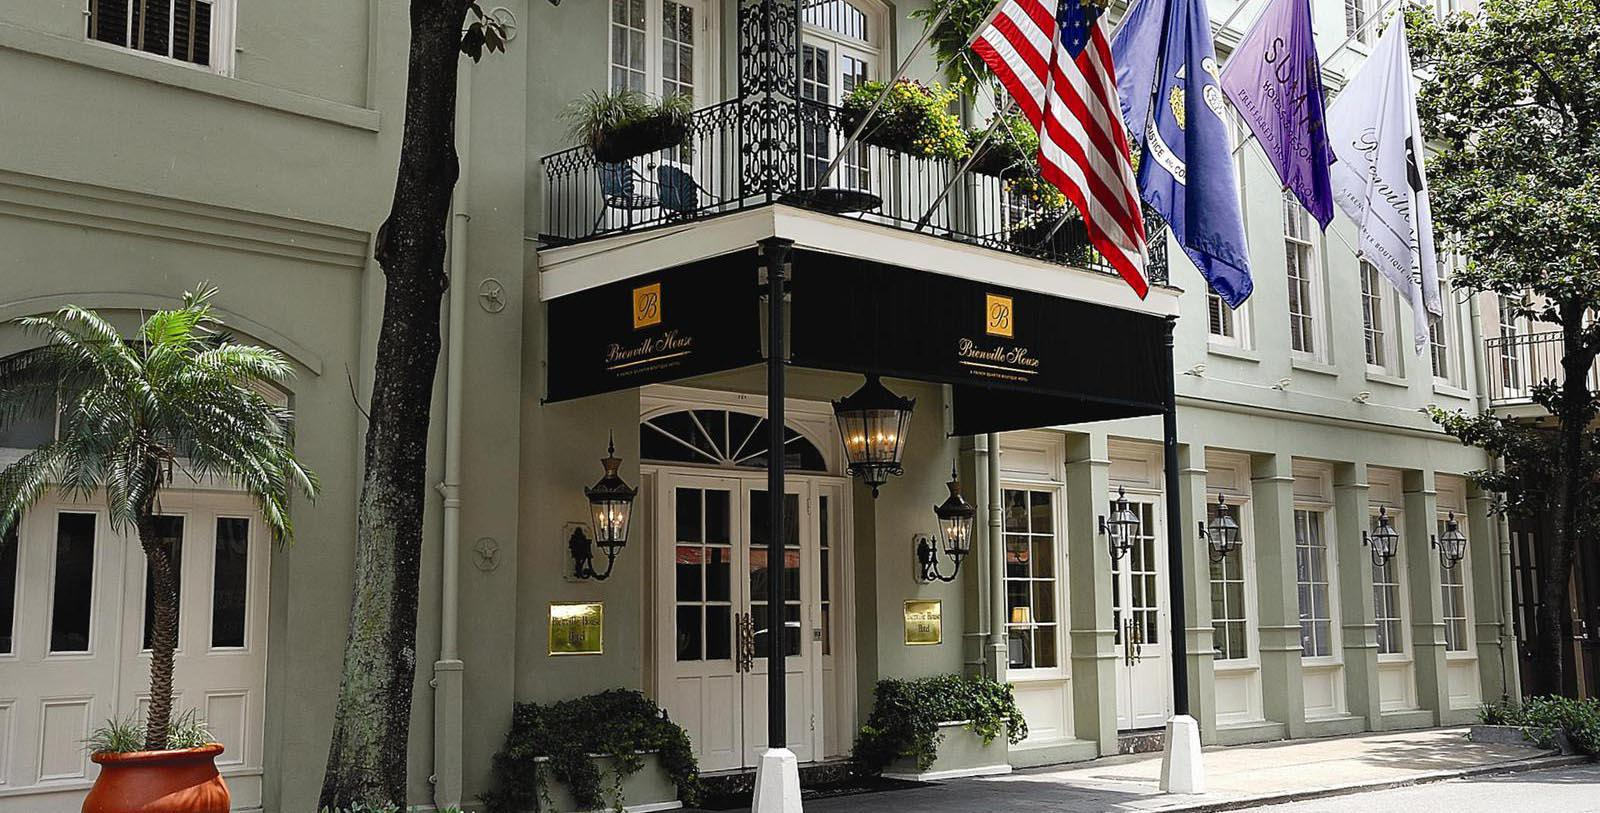 Image of hotel exterior and entryway at Bienville House, 1835, Member of Historic Hotels of America, in New Orleans, Louisiana, Special Offers, Discounted Rates, Families, Romantic Escape, Honeymoons, Anniversaries, Reunions